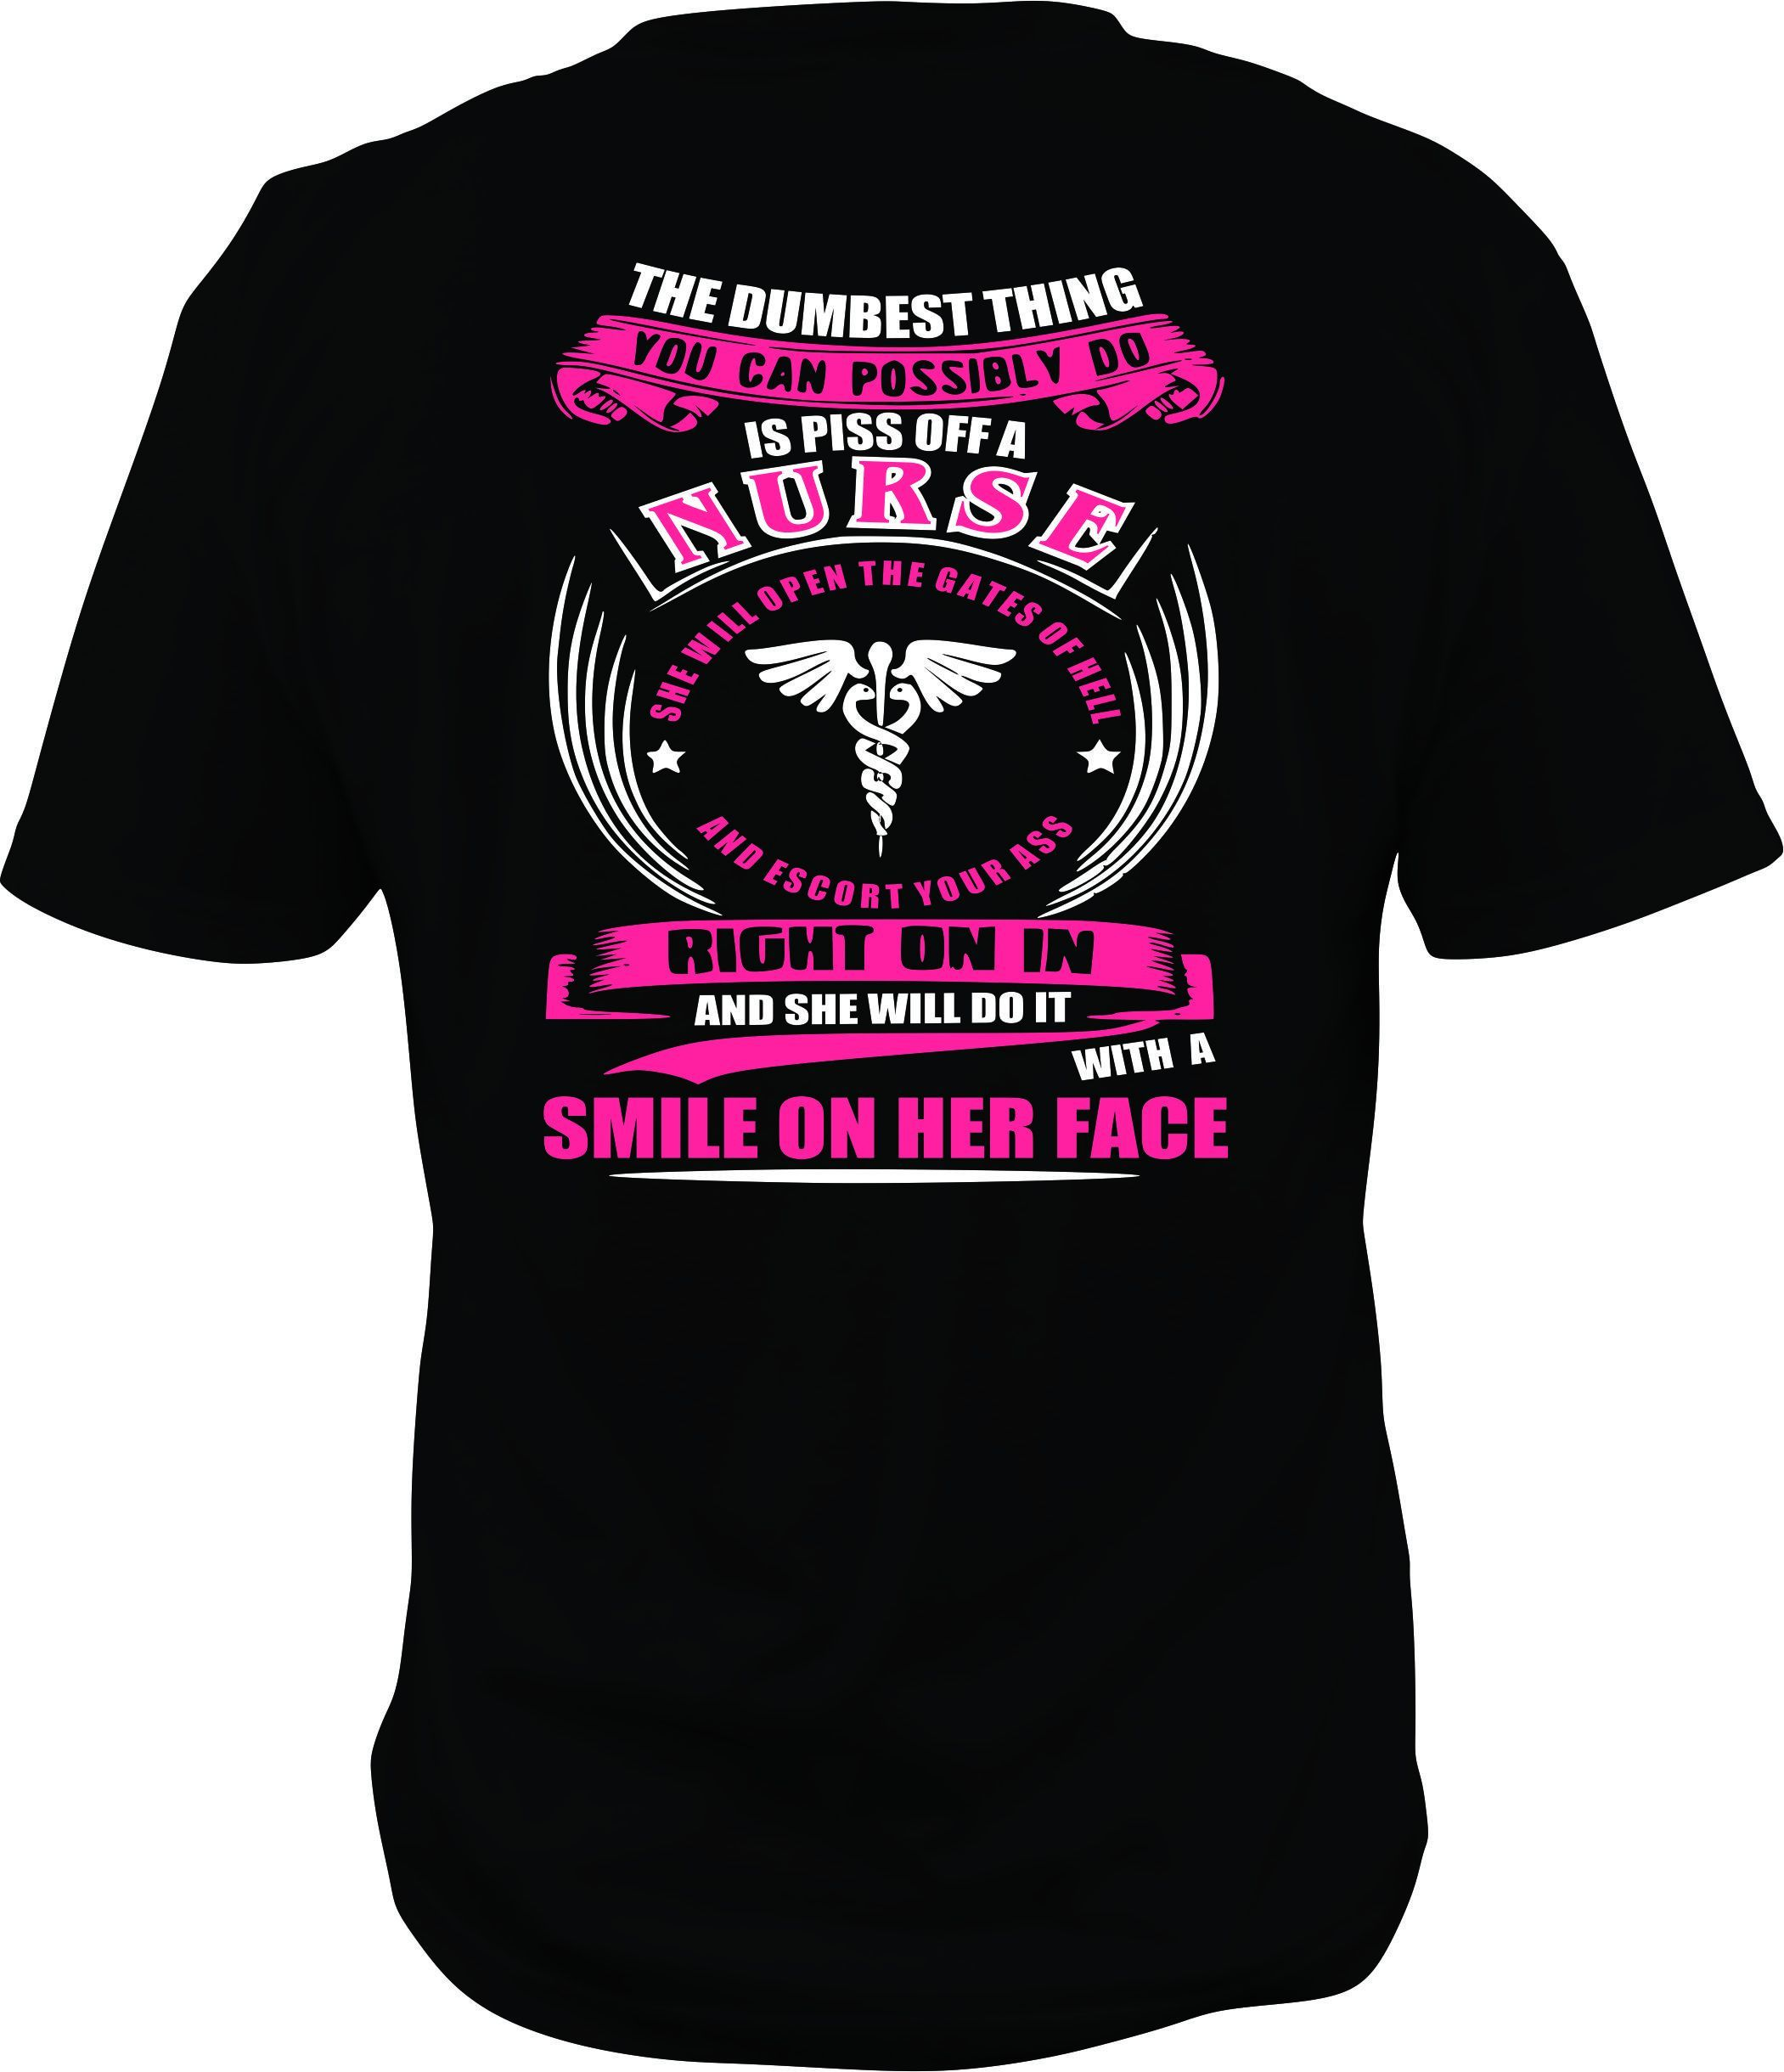 The dumbest thing you can possibly do is piss off a nurse, nurse shirt. RN shirt, LPN shirt, Nurse shirt, custom nursing shirt